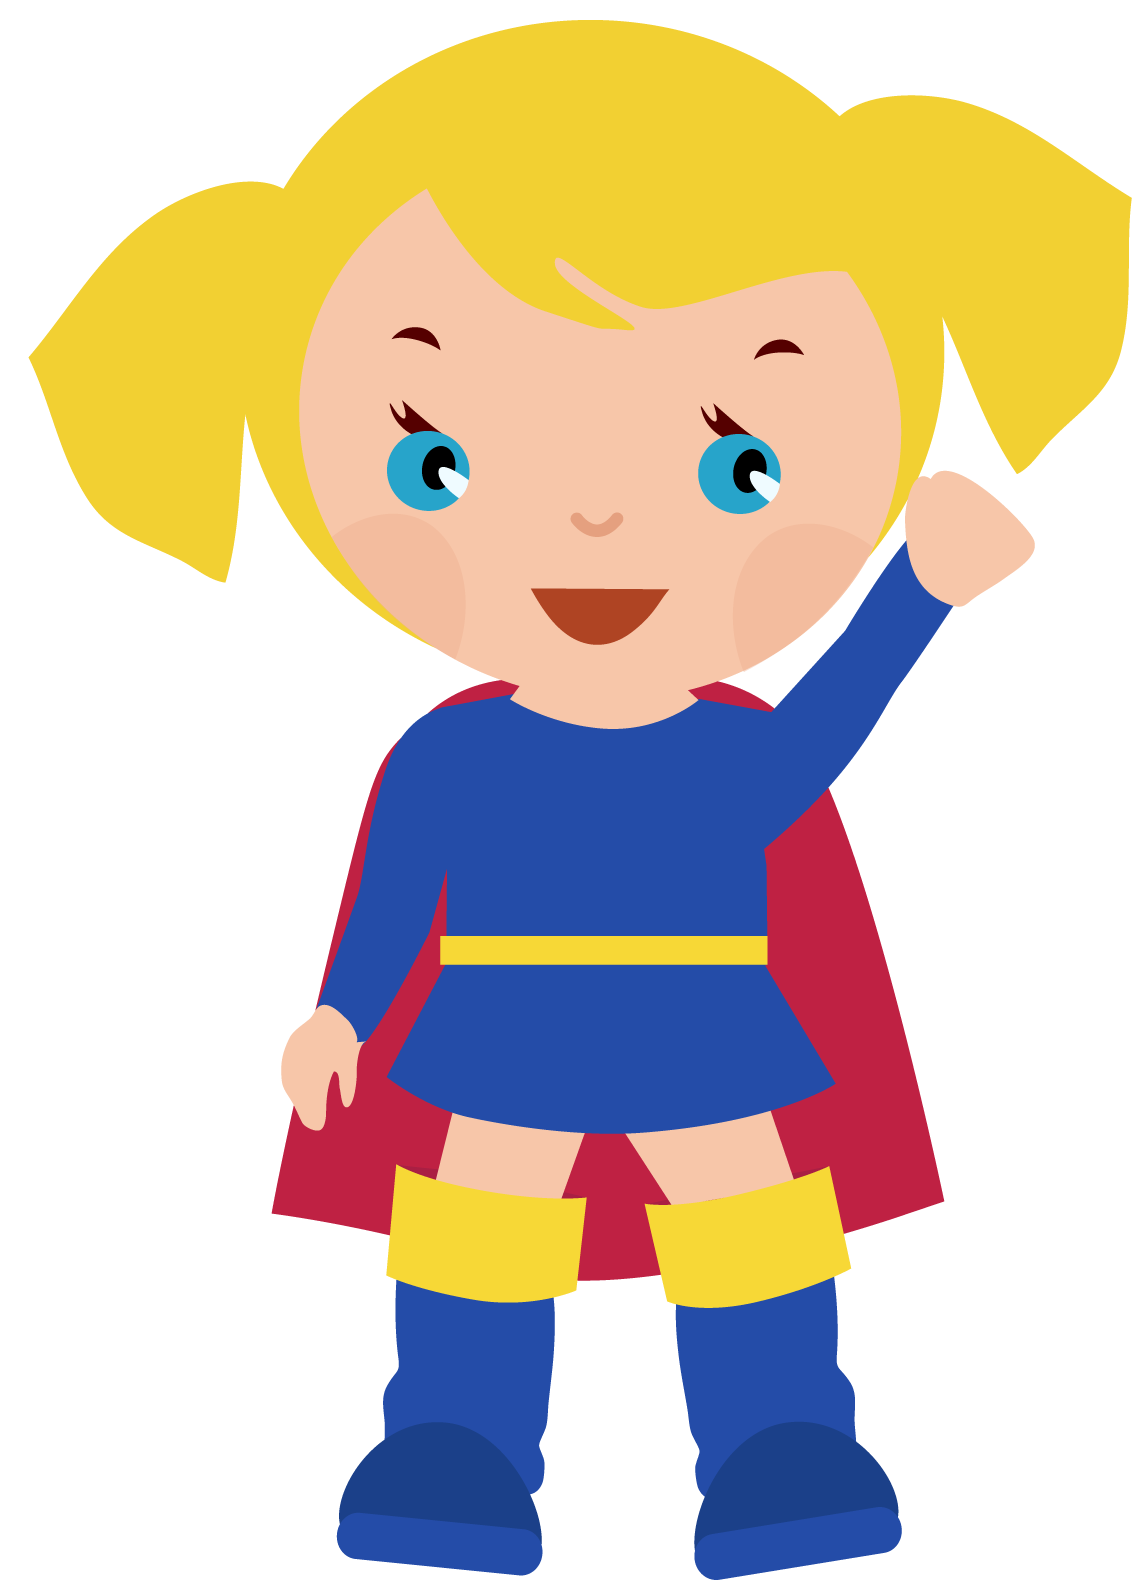 Supergirl clipart png. Collection of free